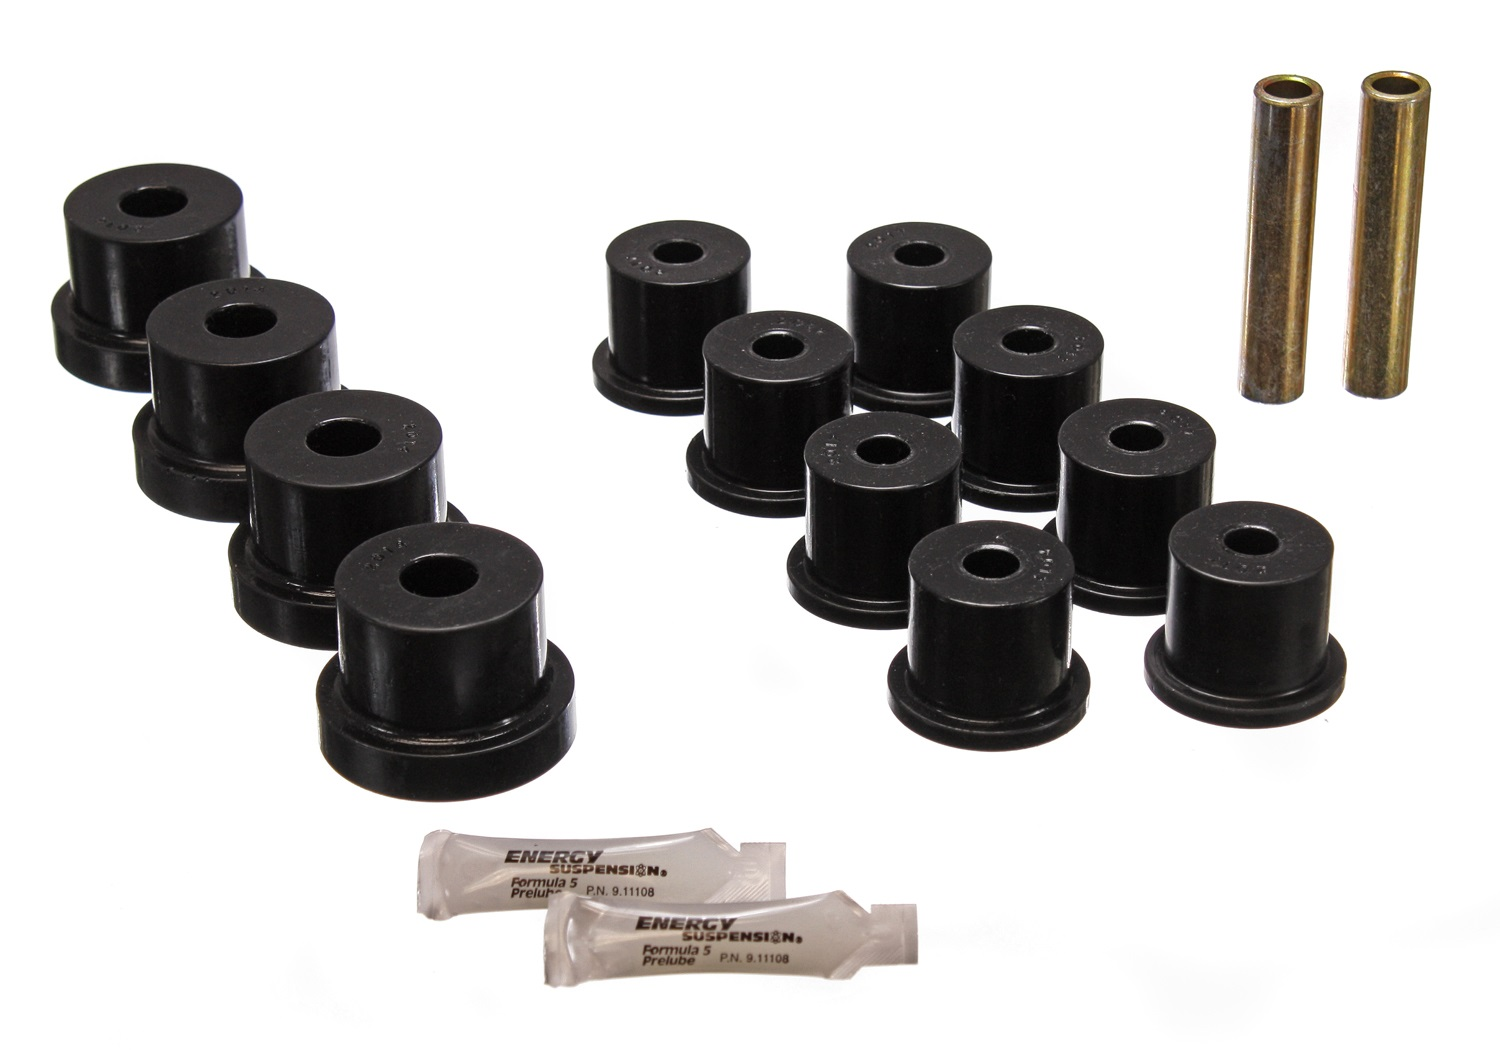 Energy Suspension Leaf Spring Bushing (3.2101G)